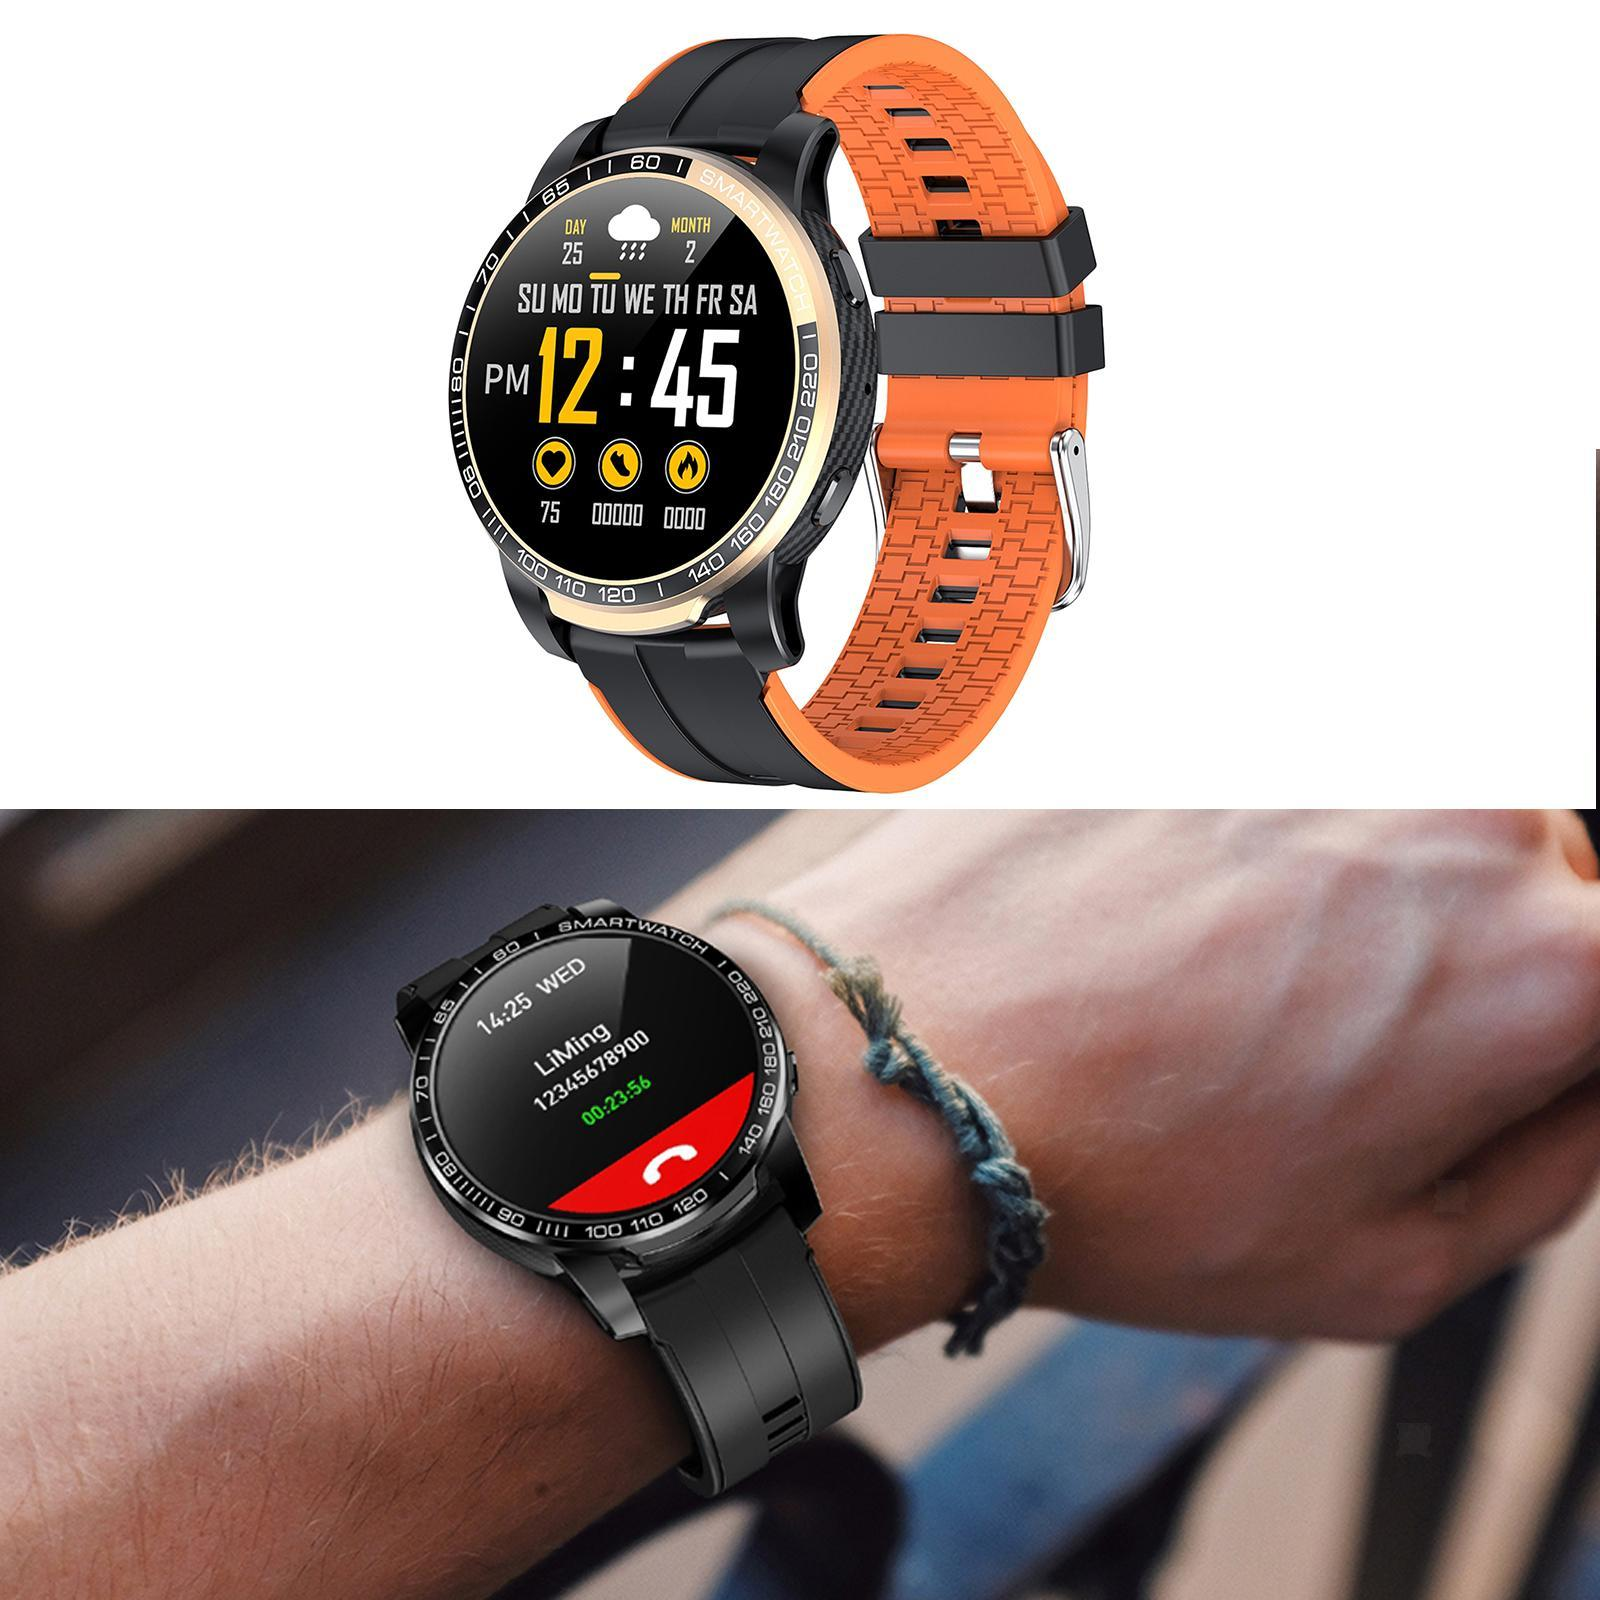 Hommes-Smart-Watch-Bluetooth-Call-Fitness-Tracker-frequence-cardiaque-sommeil miniature 16